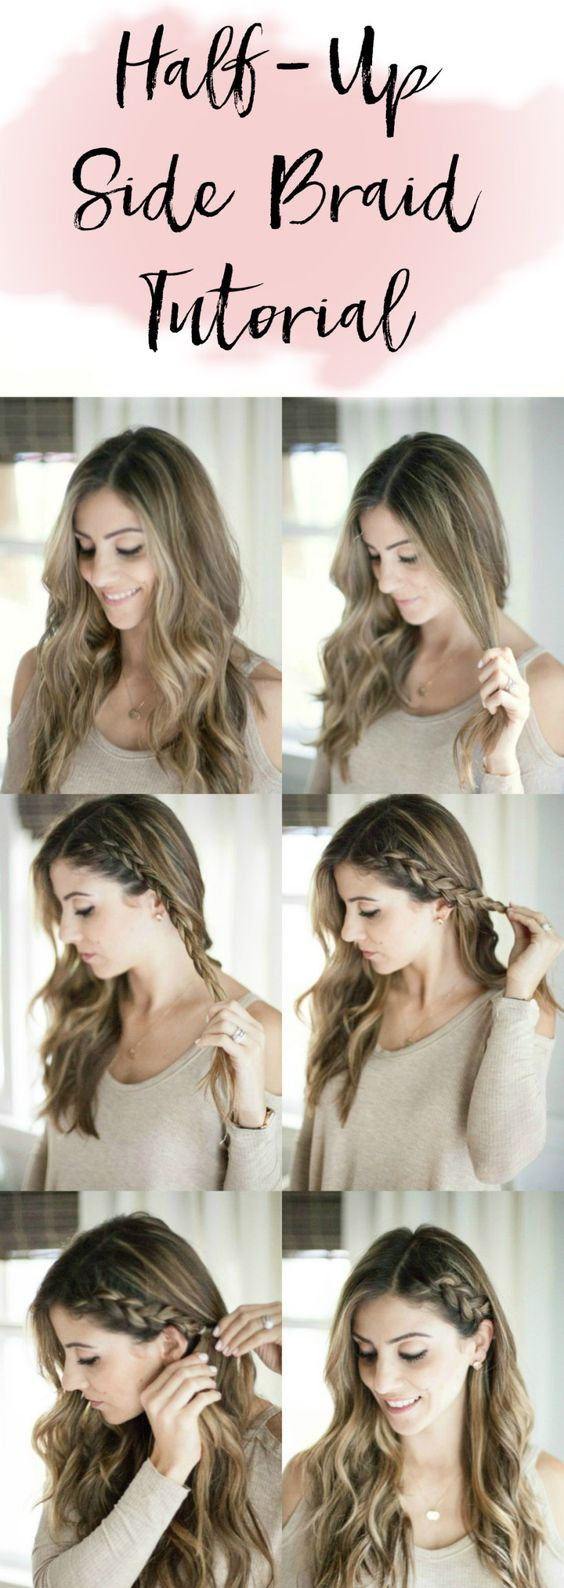 Easy Women's Hairstyles Half Up Side Braid Tutorial